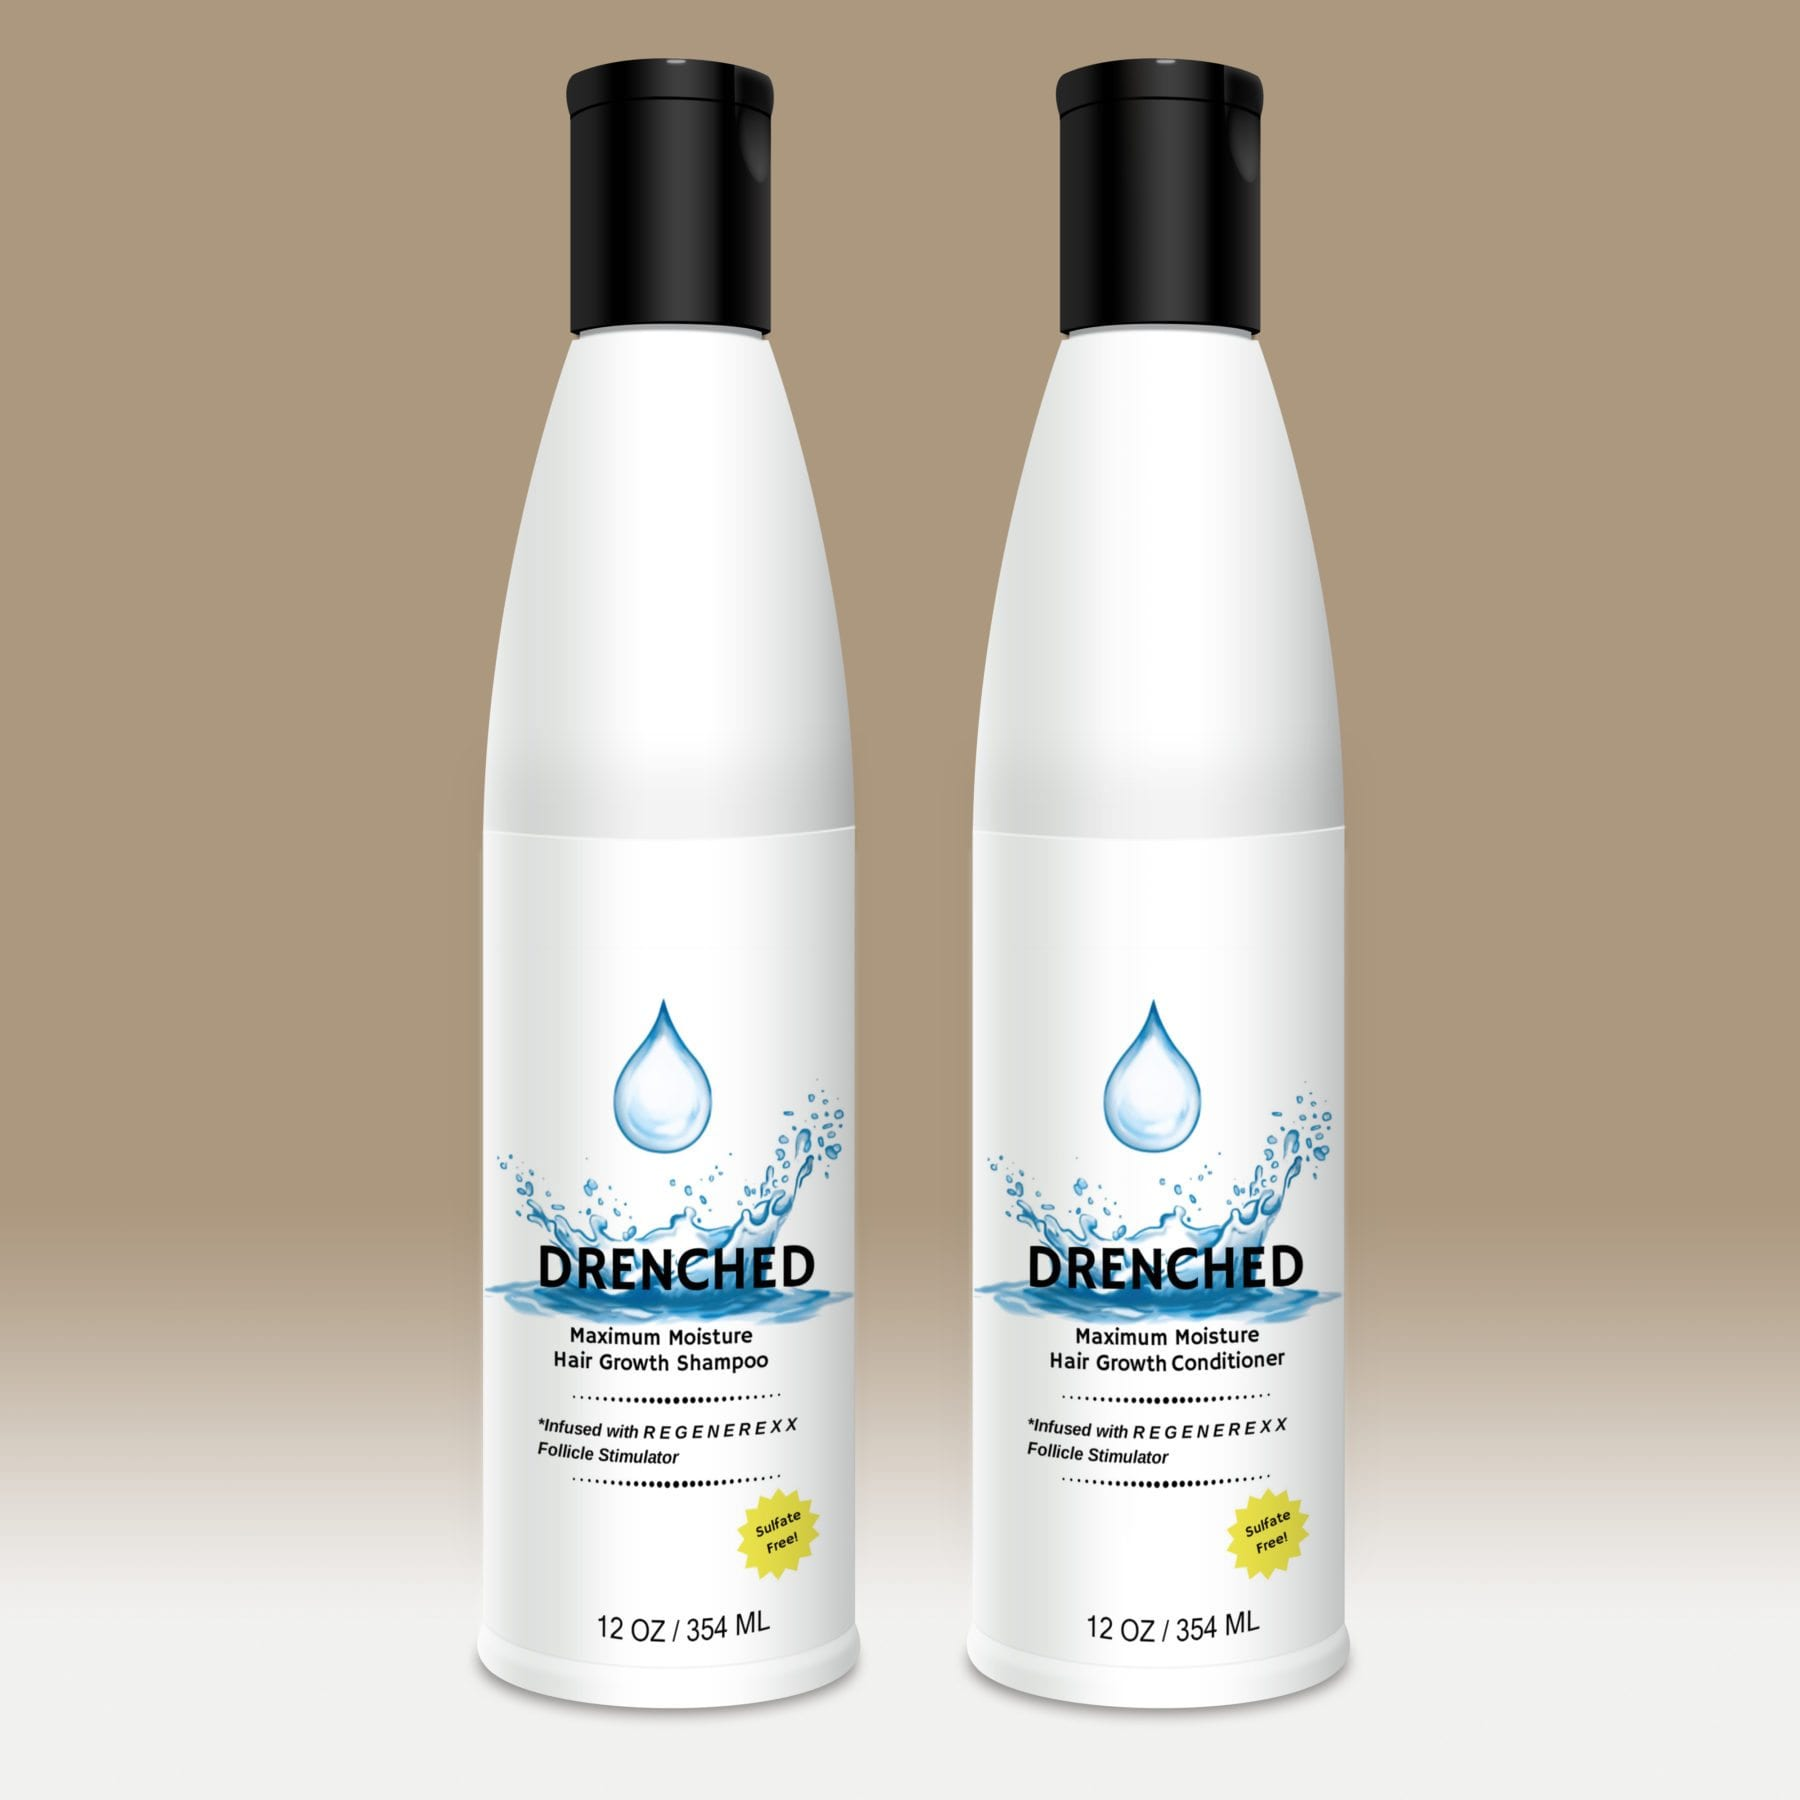 Drenched Shampoo and Conditioner Kit